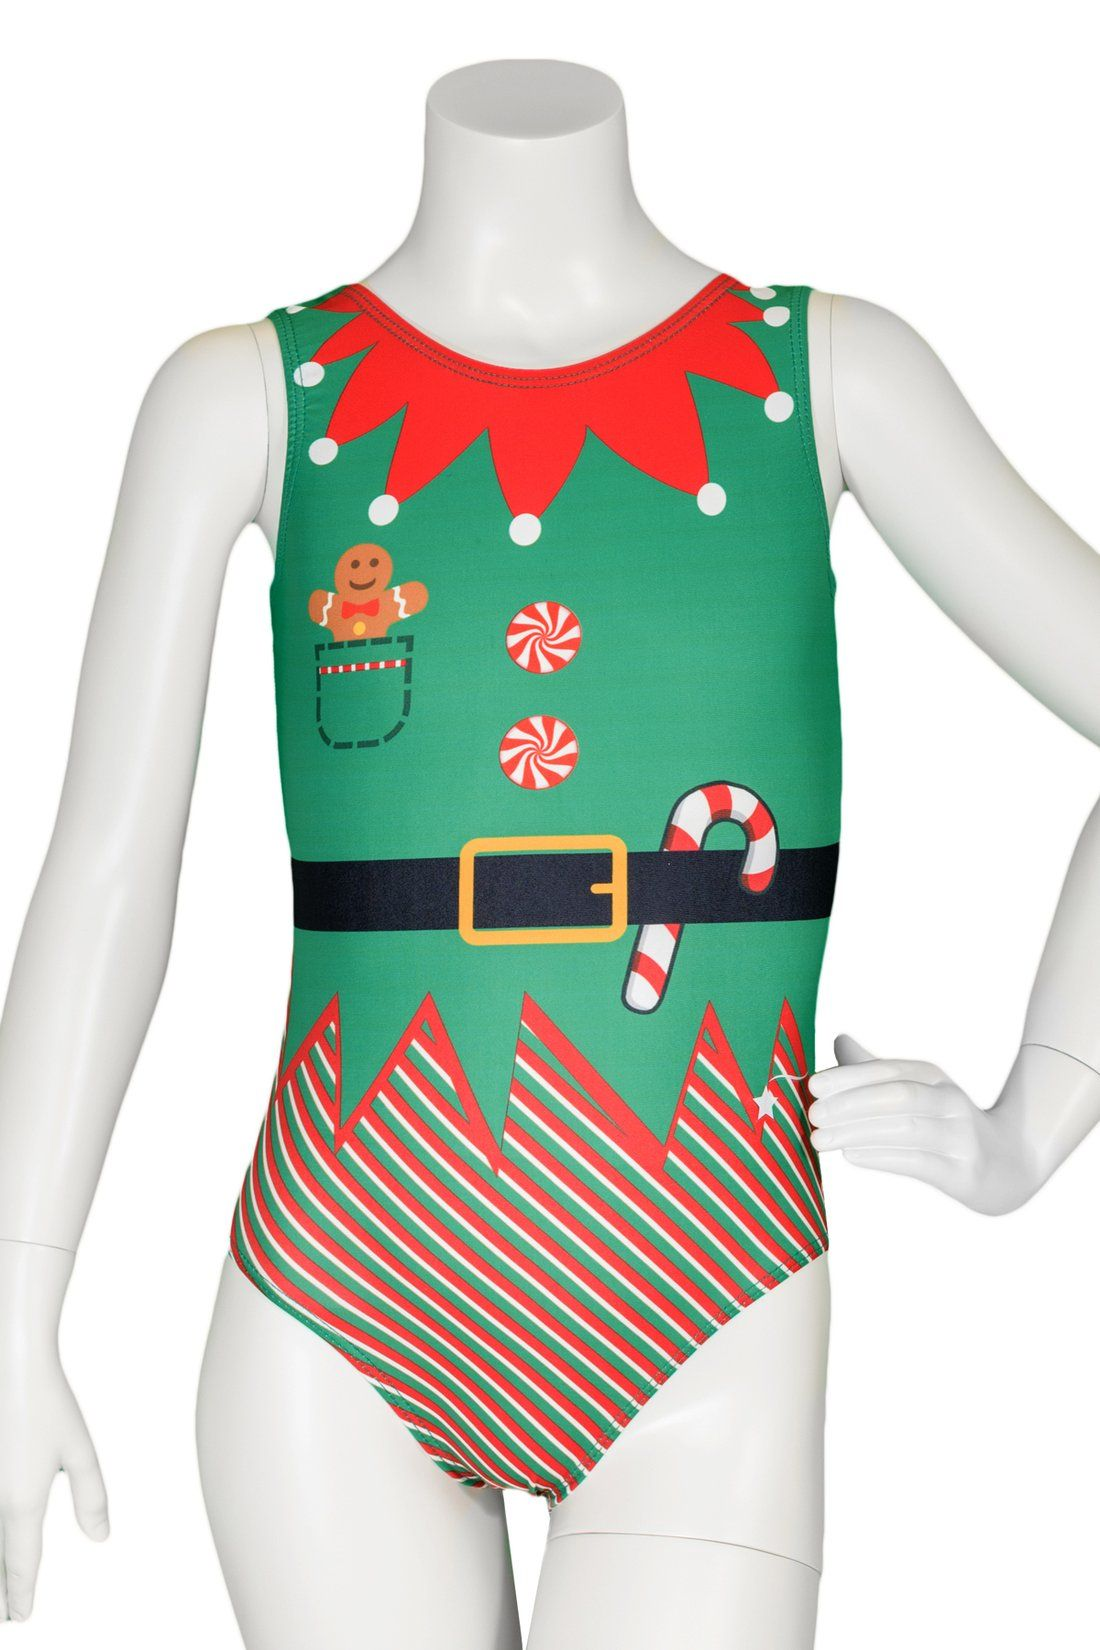 8110cf8e3caf Destira - Gym Elf Leotard  24.97